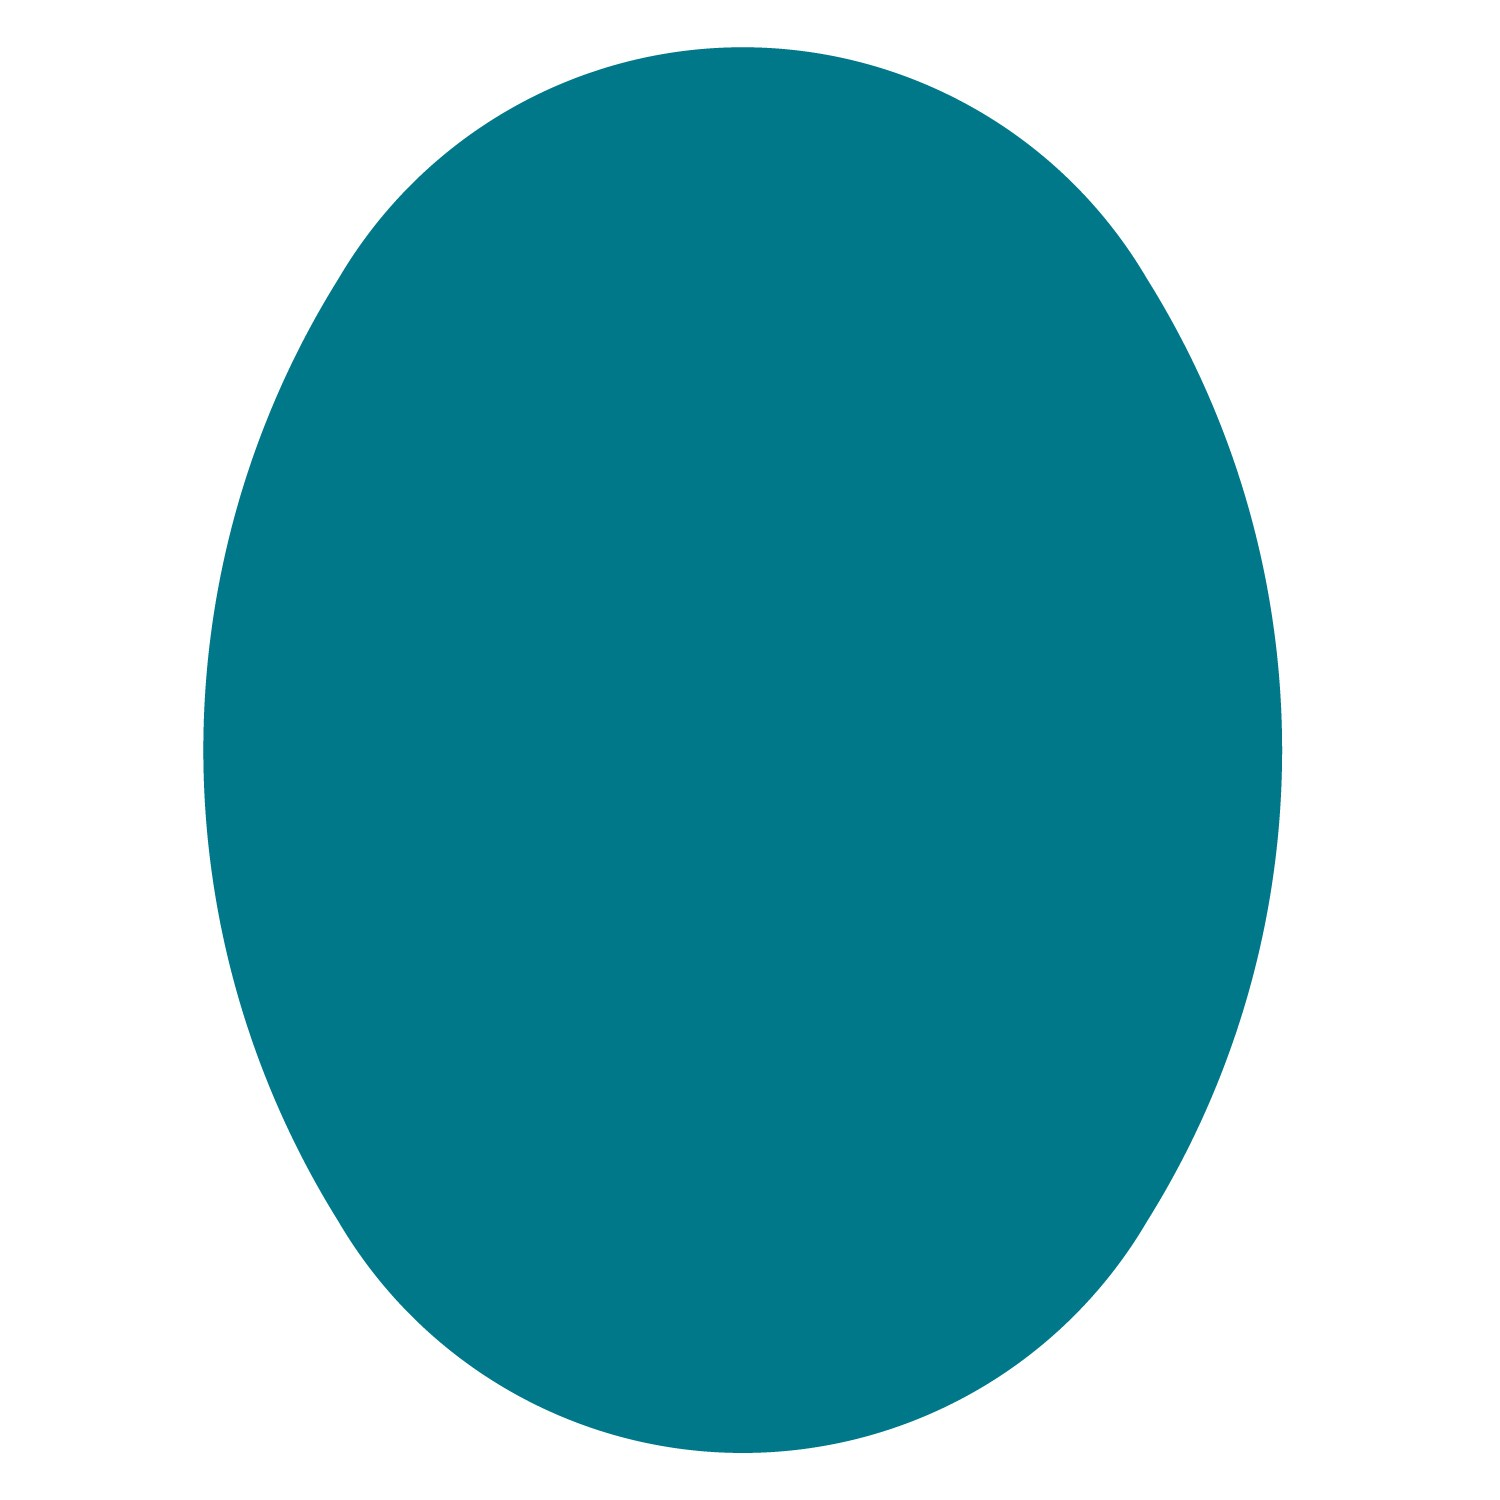 Large Oval Template - ClipArt Best